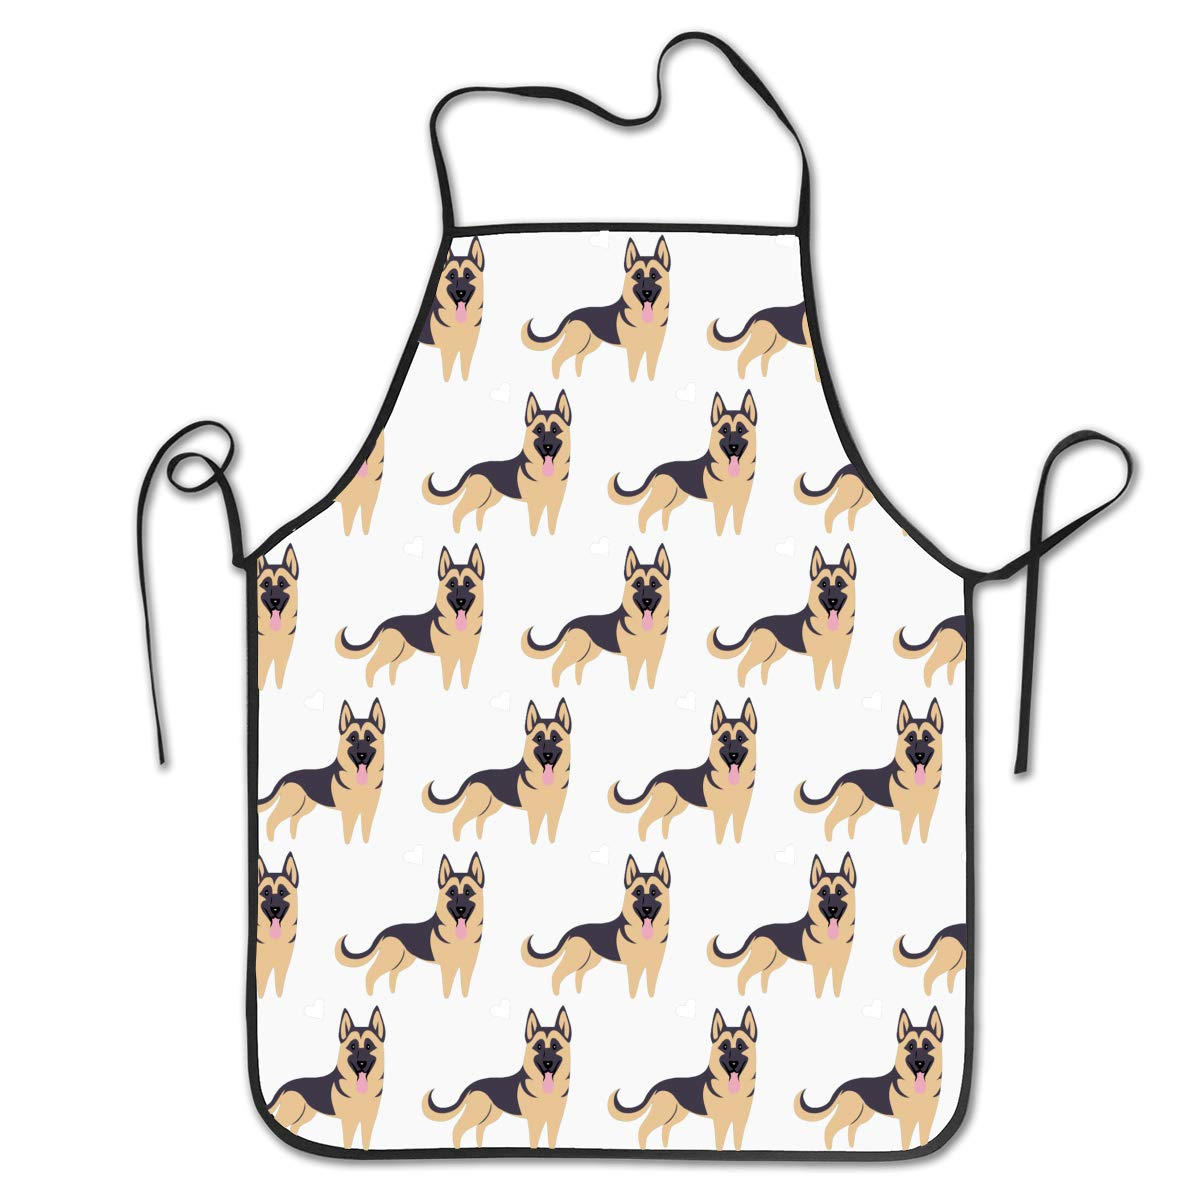 OKAYDECOR Waist Adjustable Professional Apron Kitchen German Shepherd Dog Heart Cute Pattern Aprons Comfortable Perfect for Cooking Guide